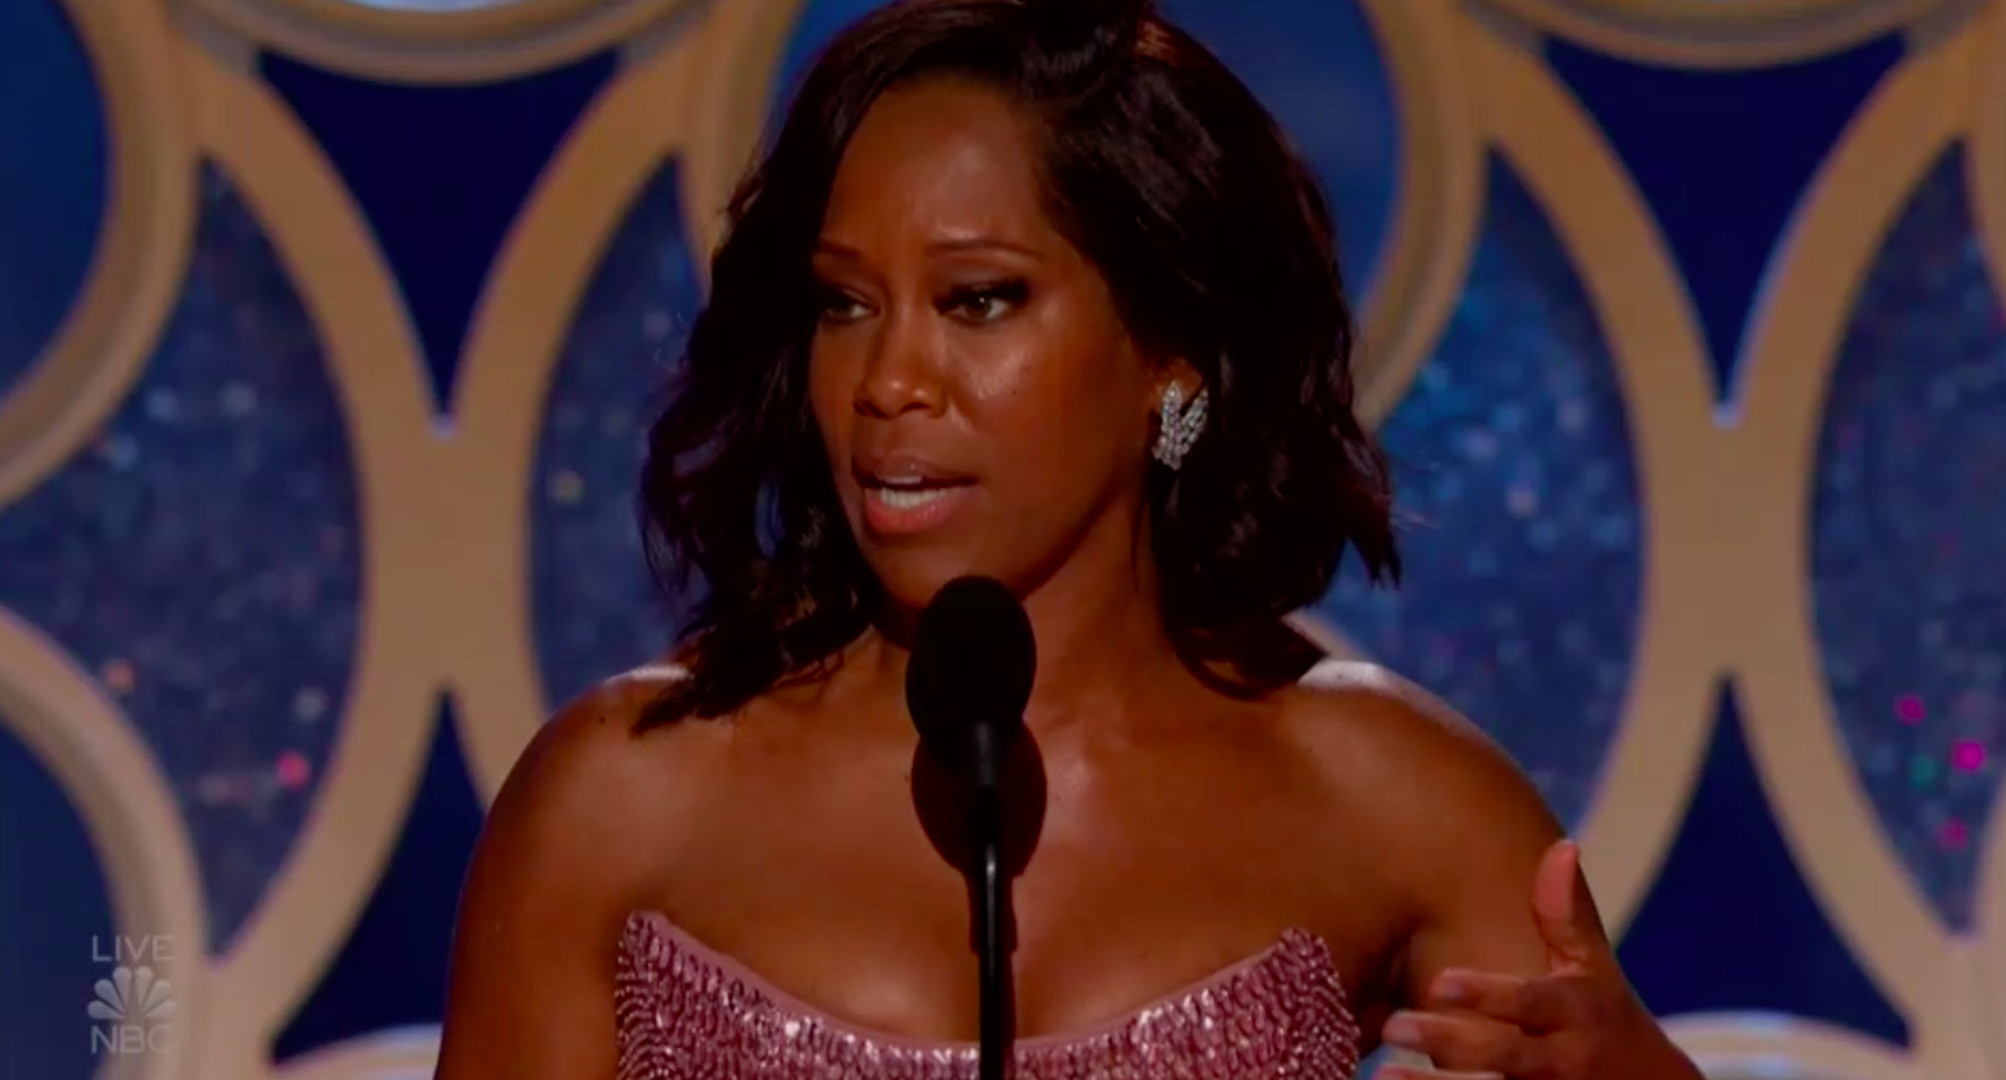 Golden Globes: Regina King pledges every project she produces will involve 50 percent women